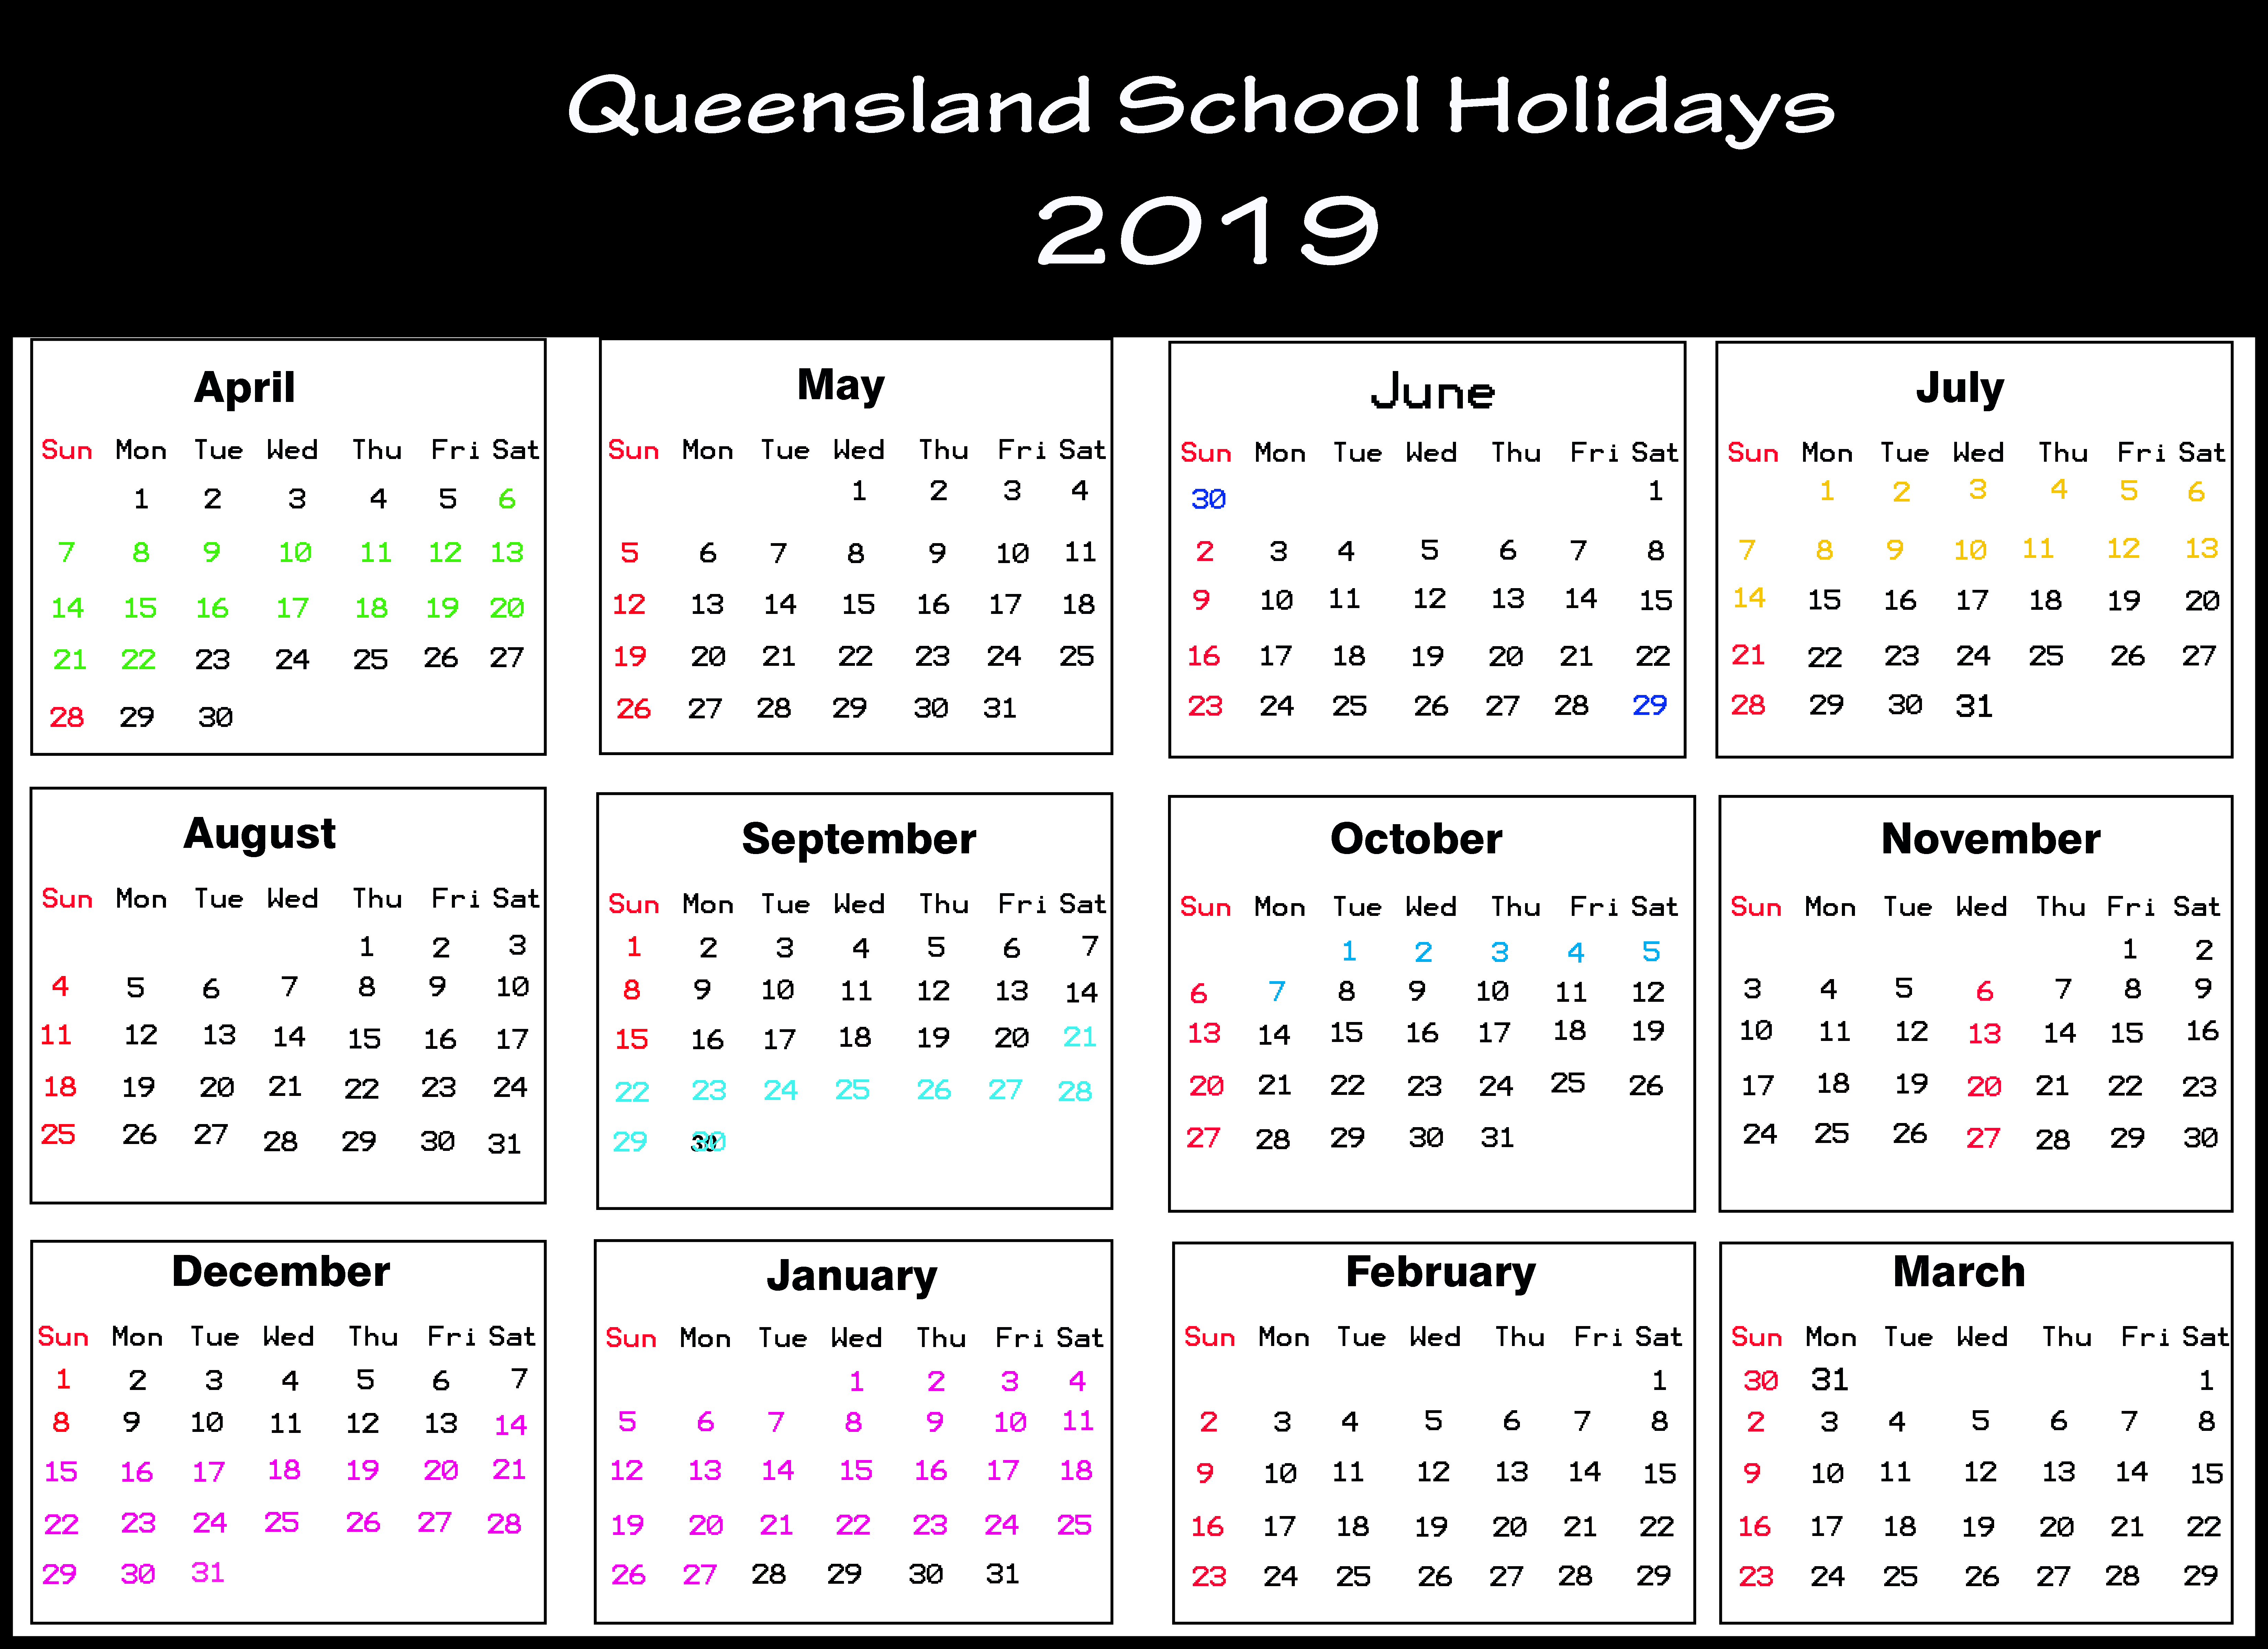 Queensland (Qld) School Holidays